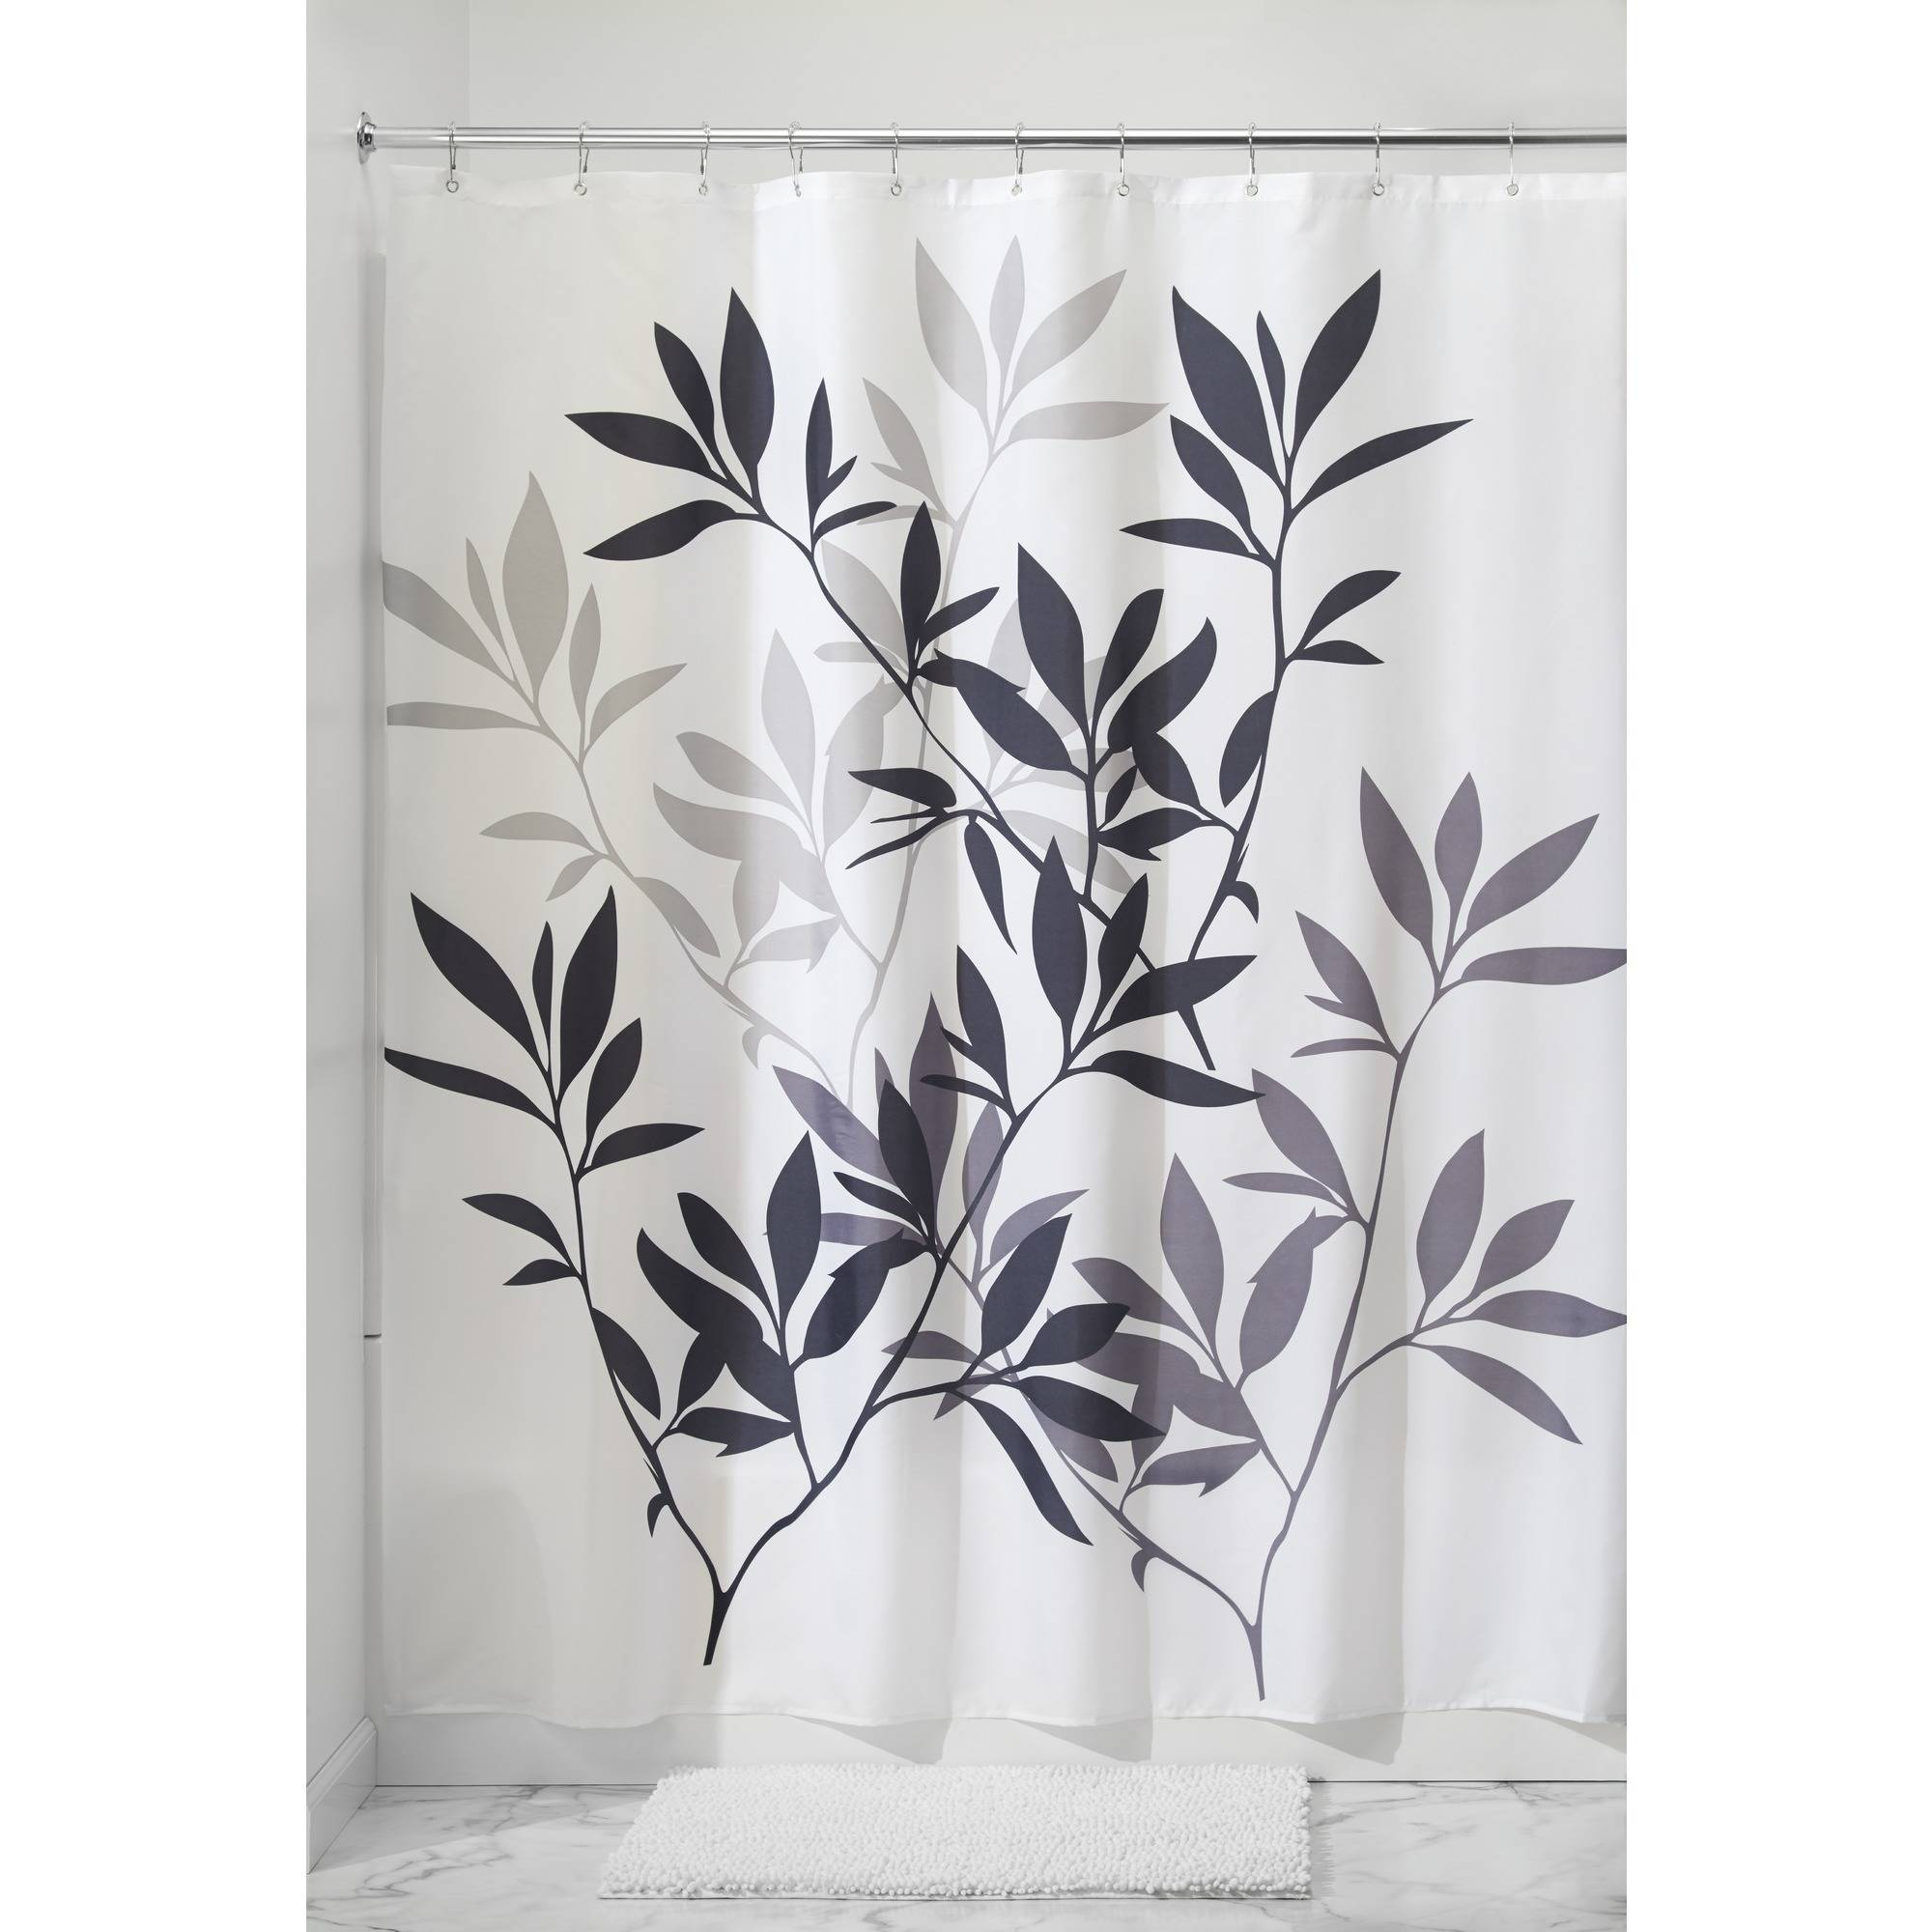 InterDesign Leaves Shower Curtain   Walmart com. Extra Brown And Red Shower Curtain. Home Design Ideas